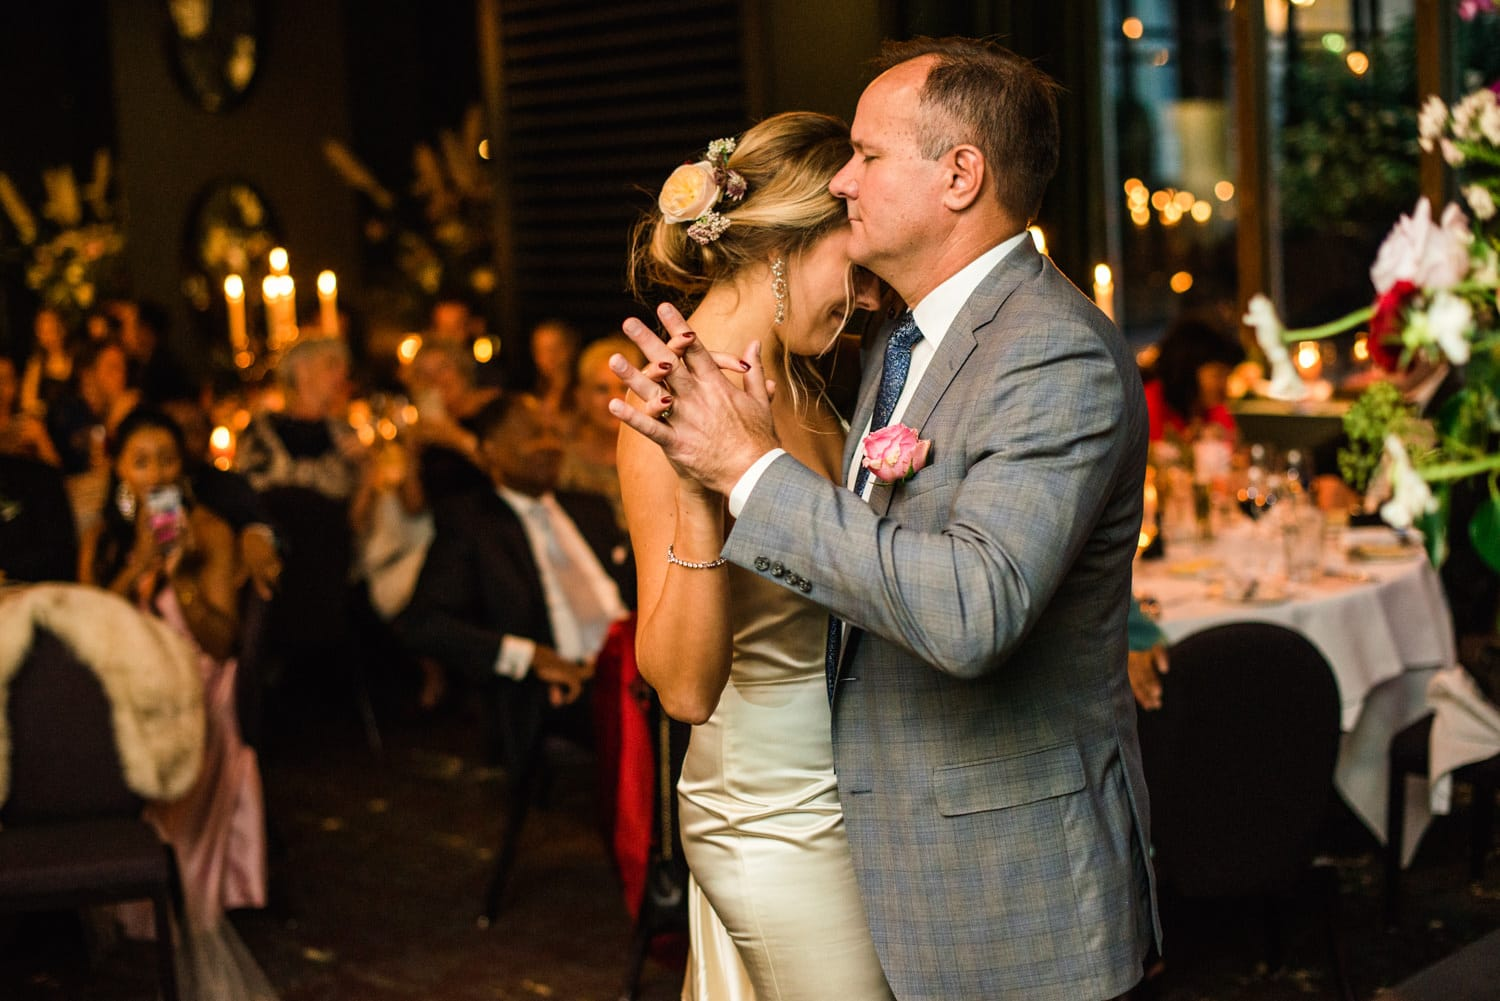 father and daughter dance at Pulitzer Hotel Amsterdam